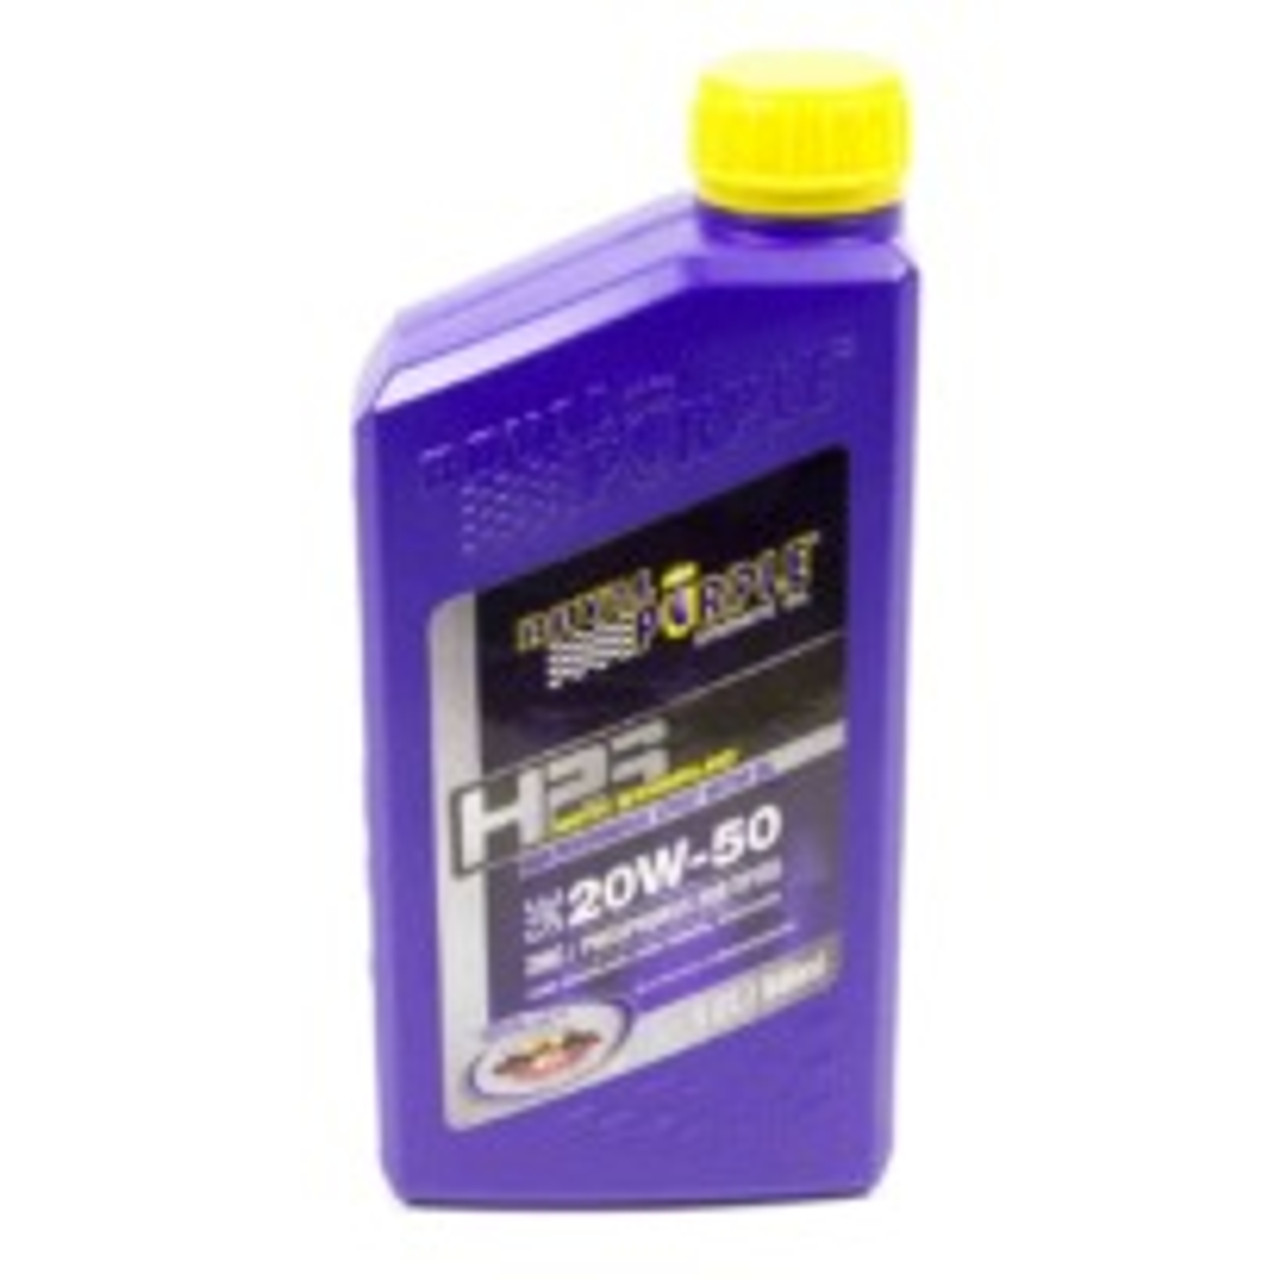 ROY31250, 20W50 HPS MULTI-GRADE OIL 1 QUART